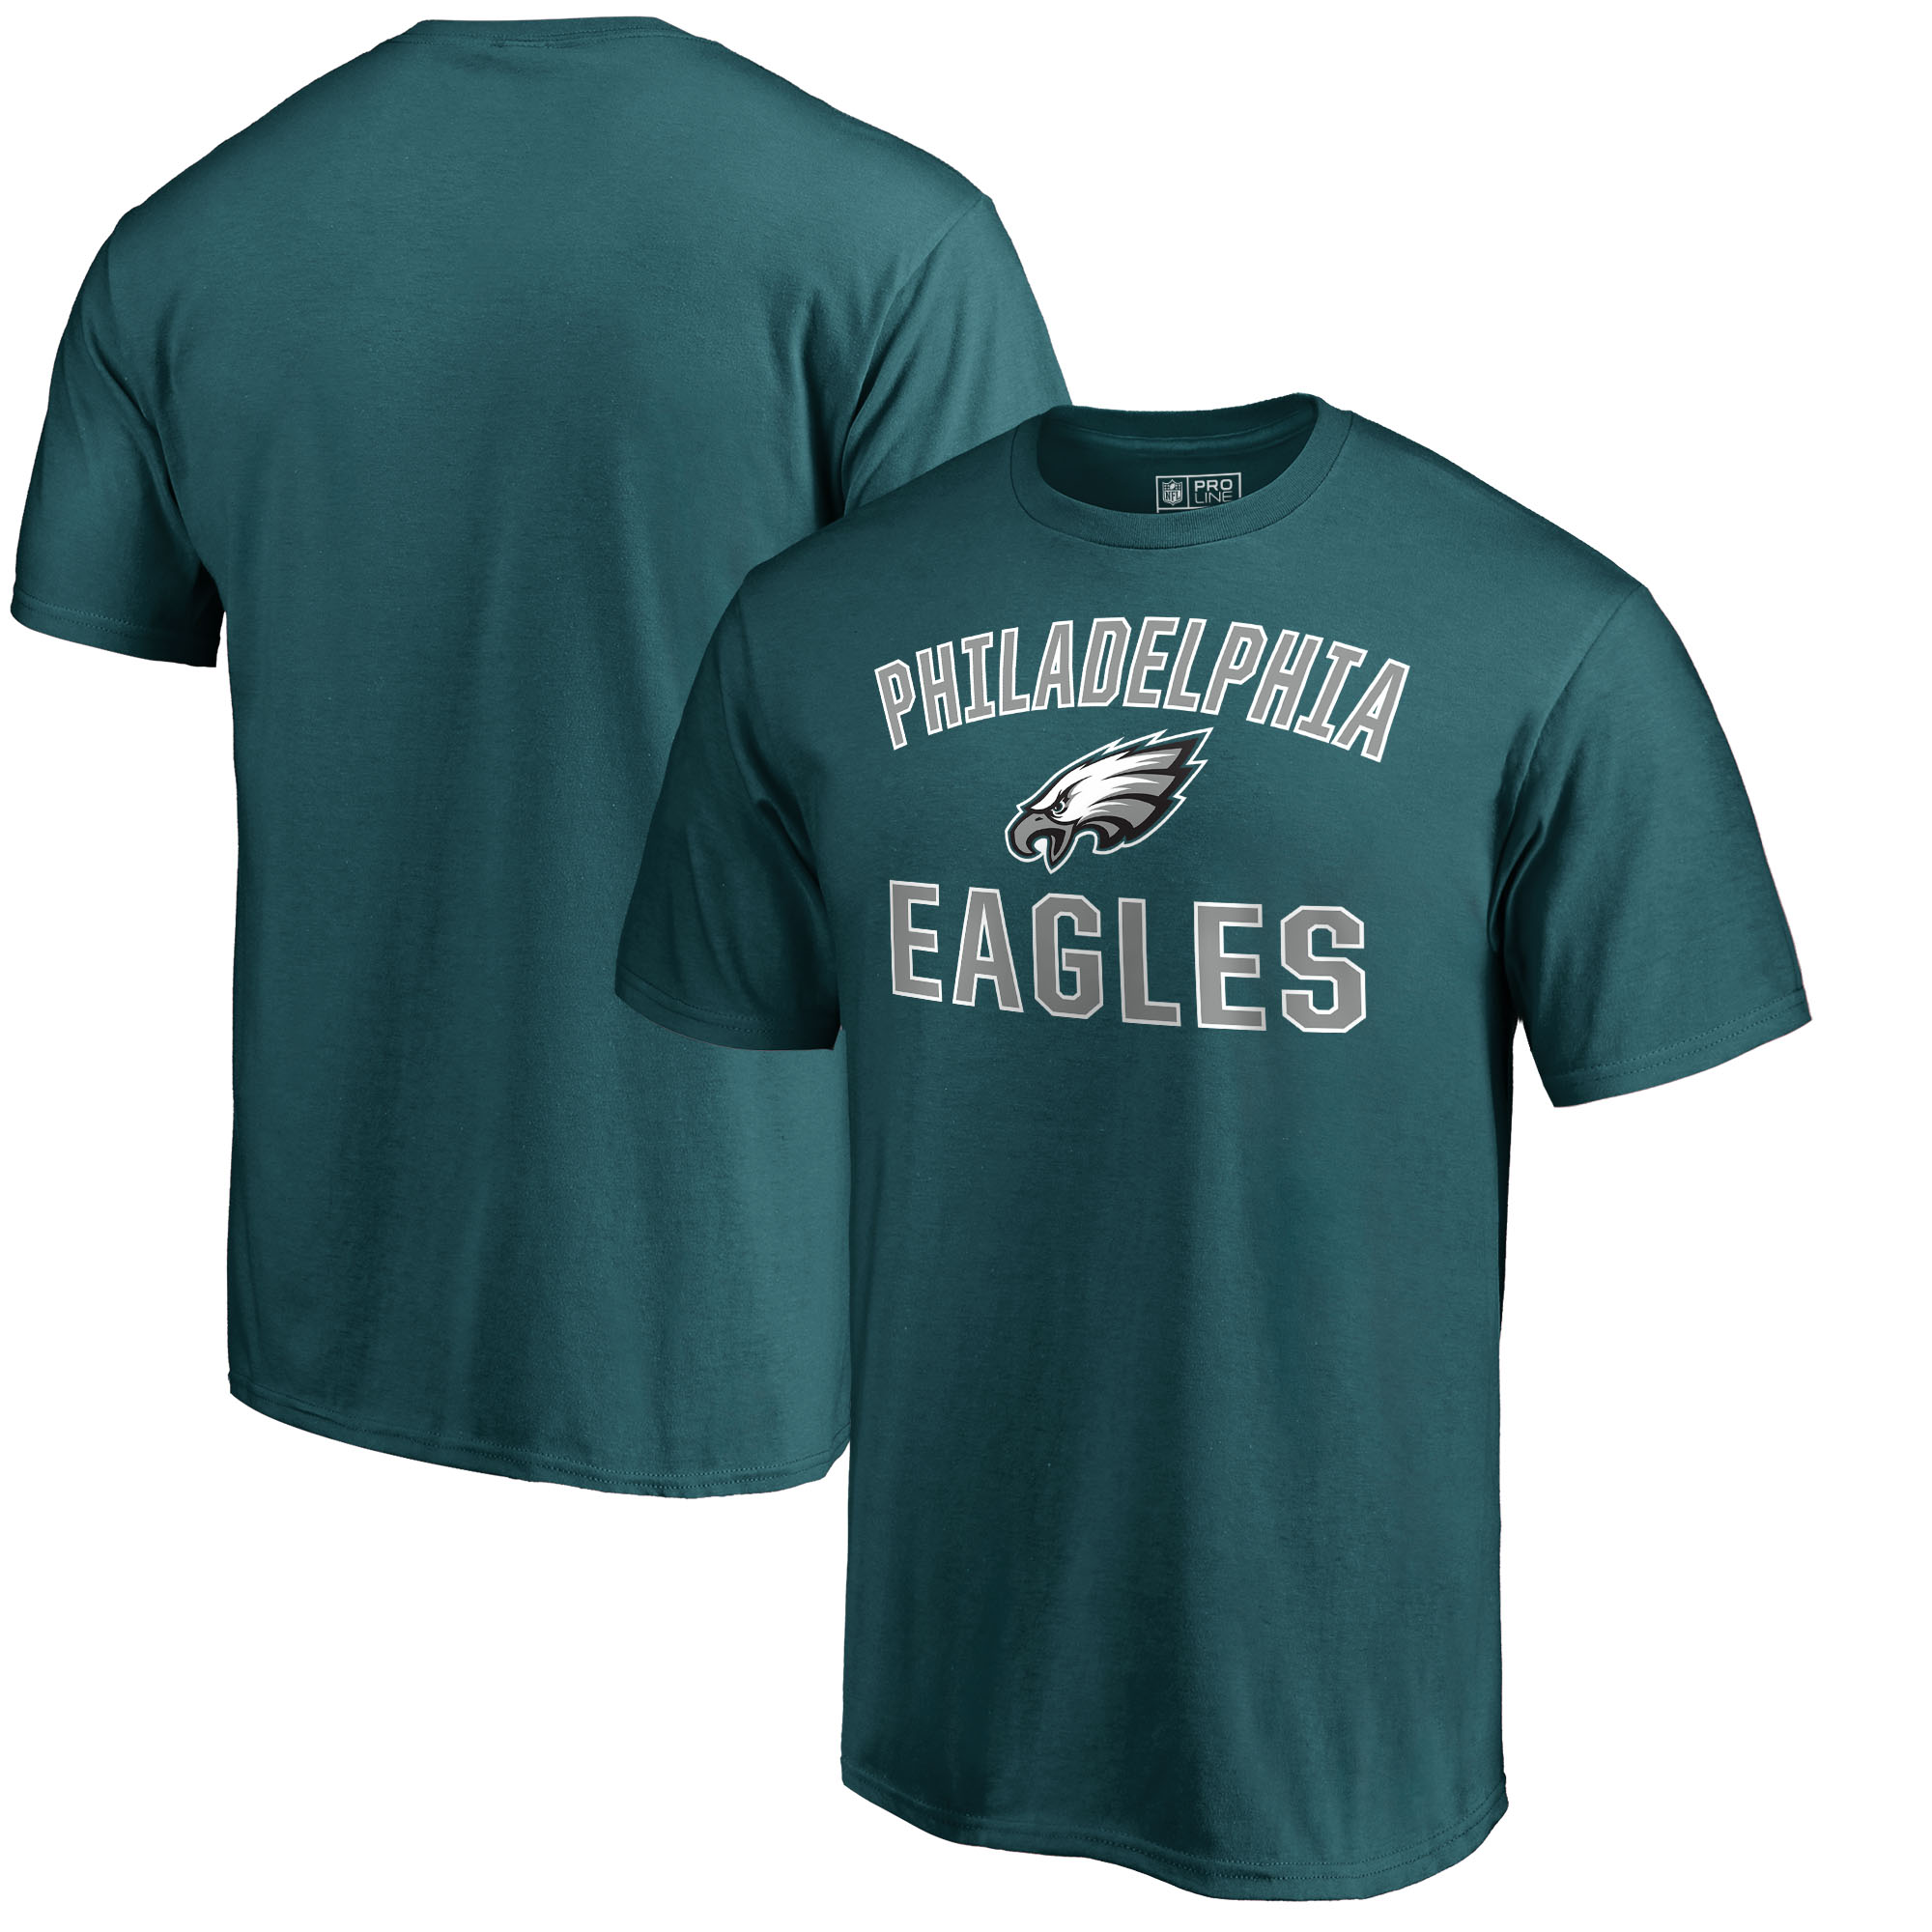 Philadelphia Eagles NFL Pro Line by Fanatics Branded Victory Arch T-Shirt - Midnight Green